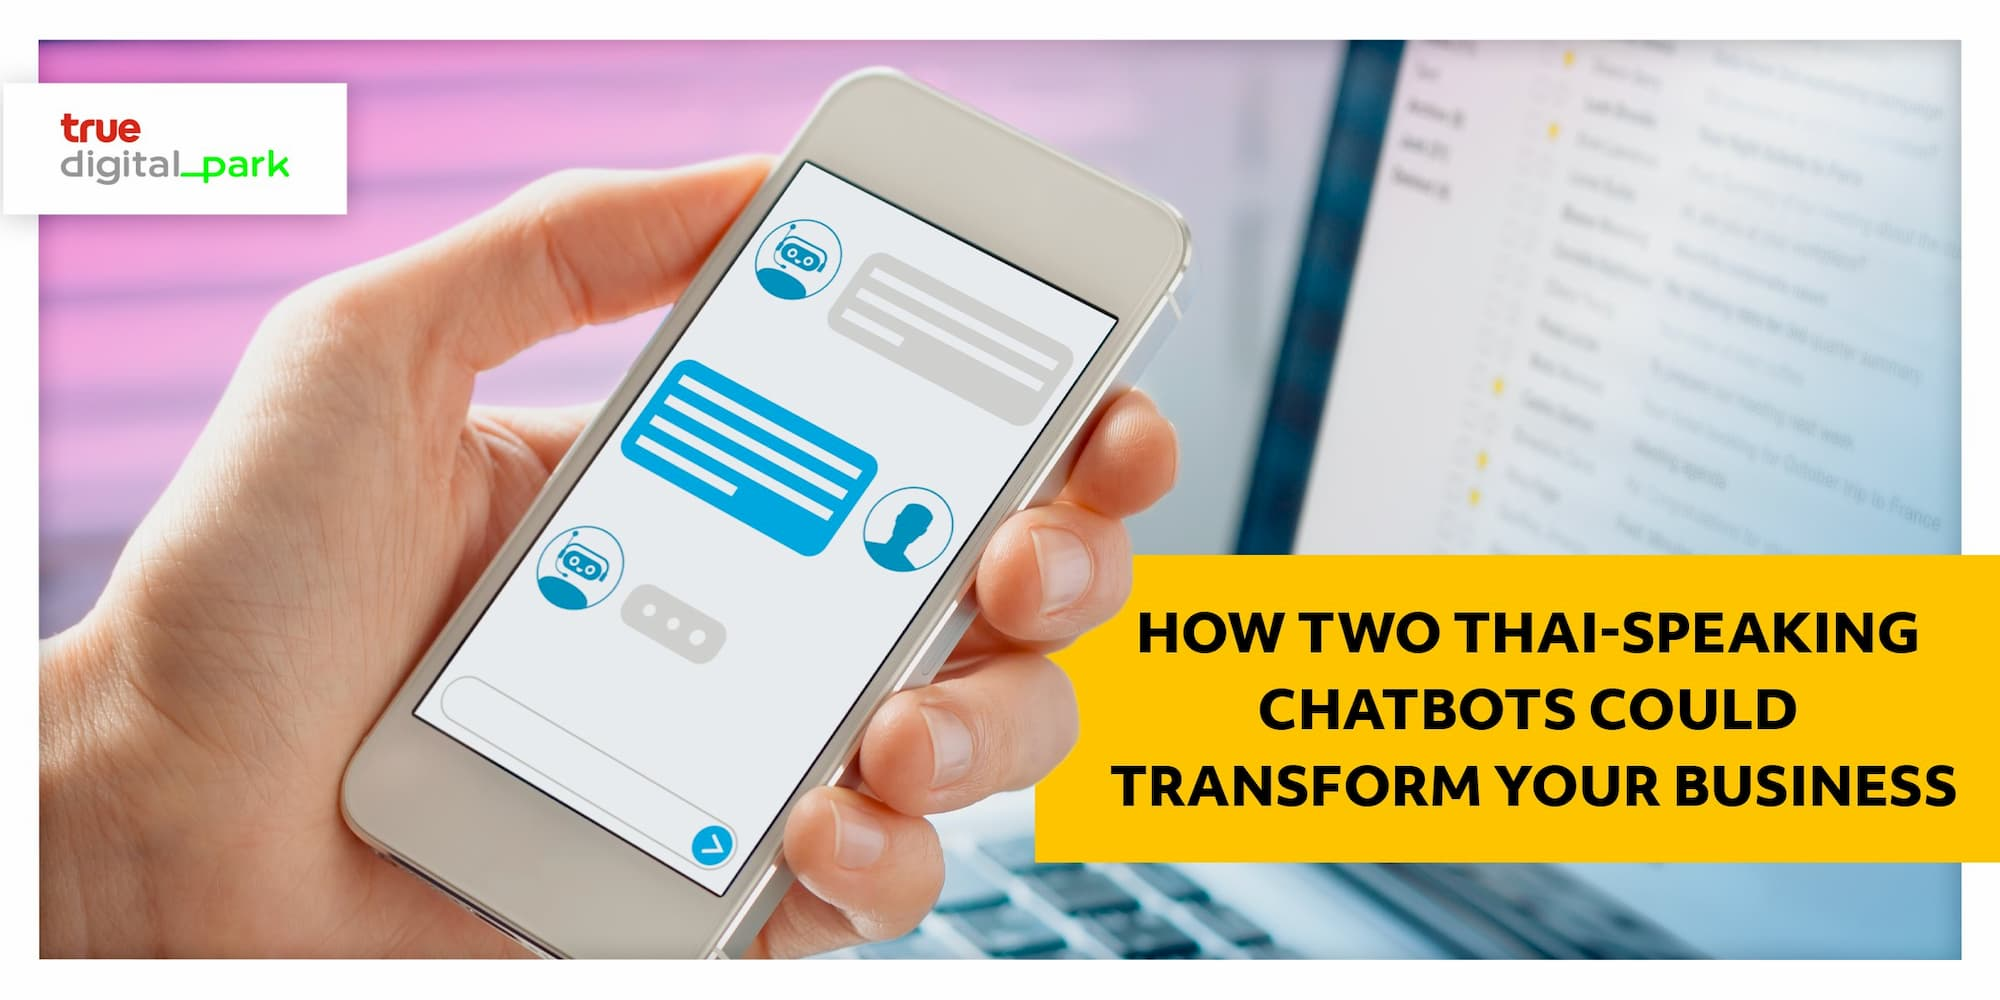 How Two Thai-Speaking Chatbots Could Transform Your Business